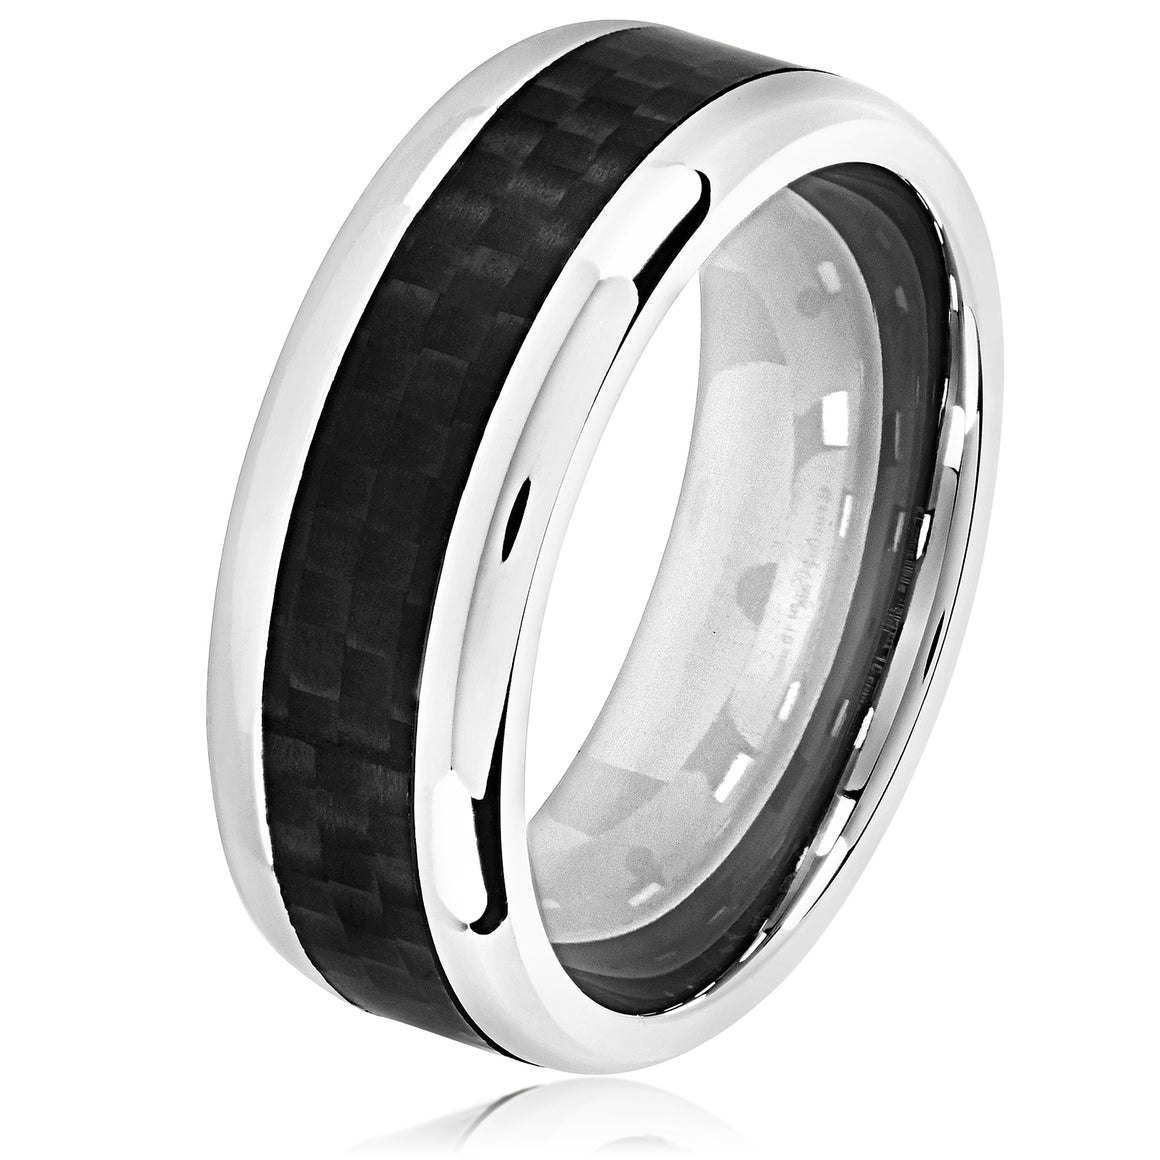 Crucible Men's Black IP High Polish Stainless Steel Carbon Fiber Comfort Fit Ring